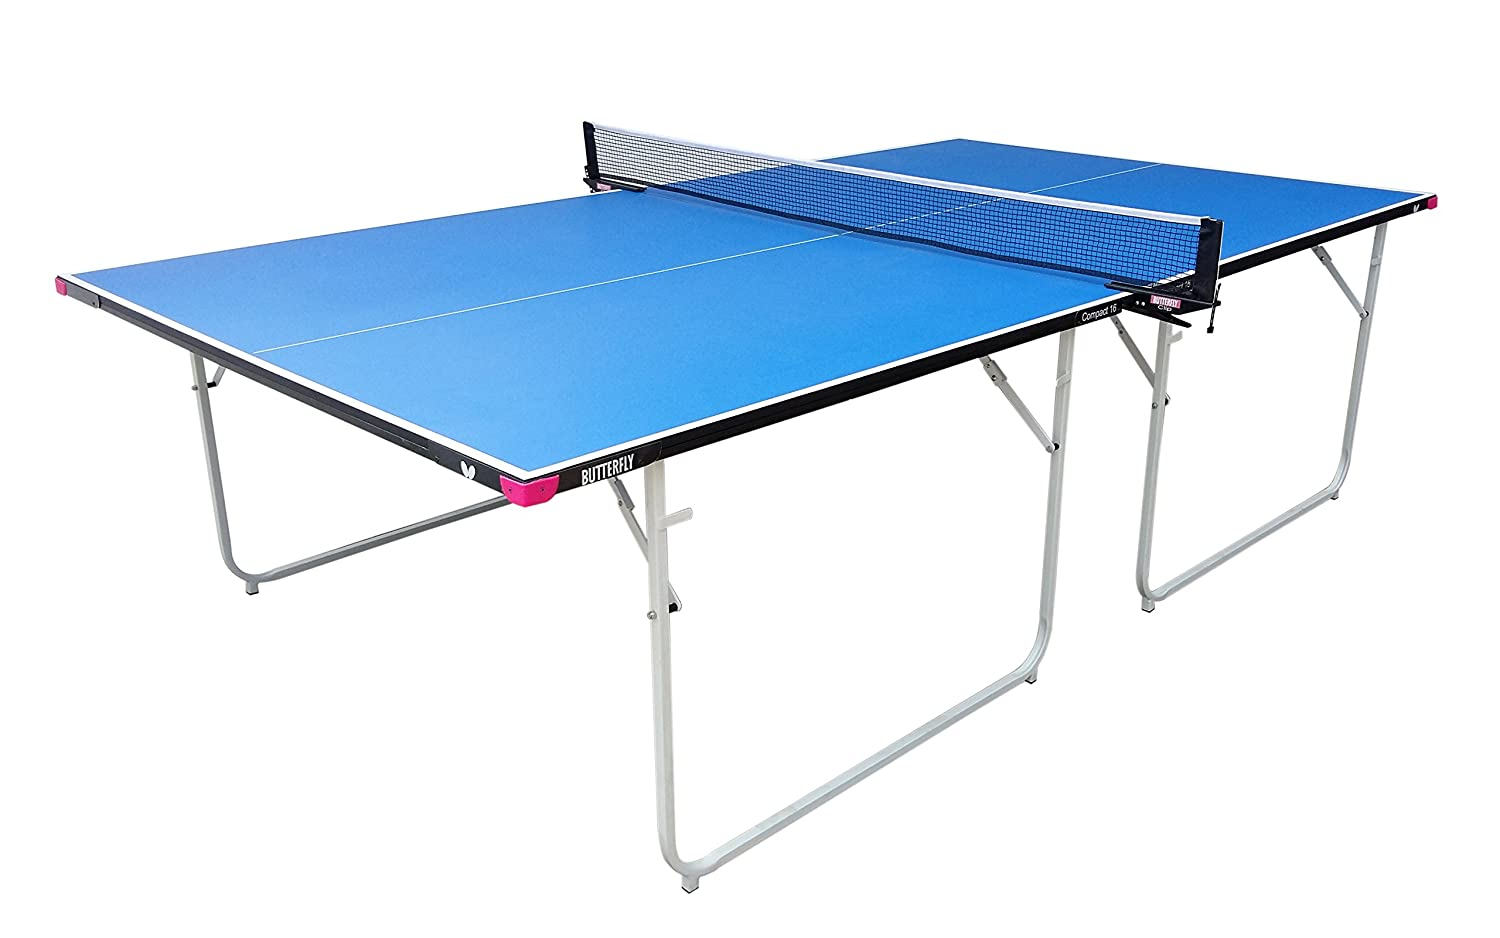 Amazon.com : Butterfly Compact 16 Table Tennis Table with Net Set ...